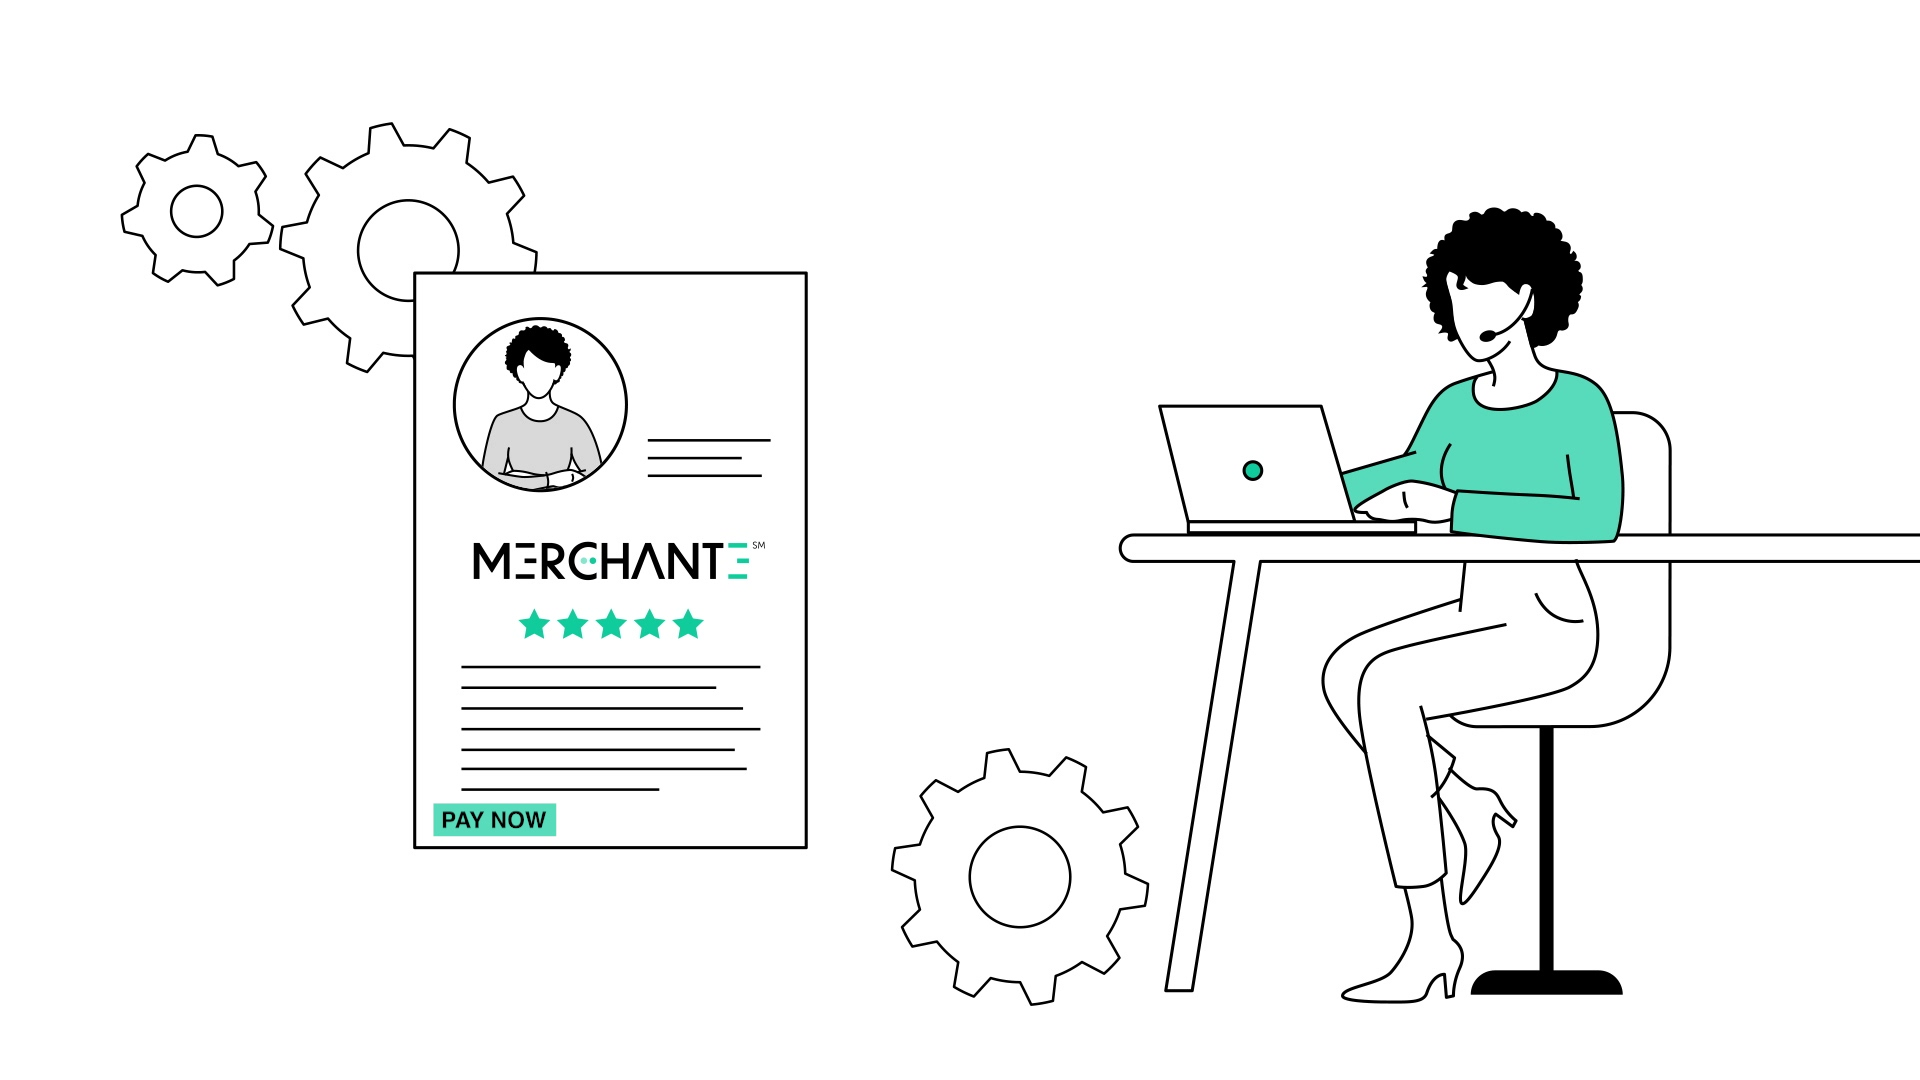 MerchantE Link-to-Pay for Netsuite